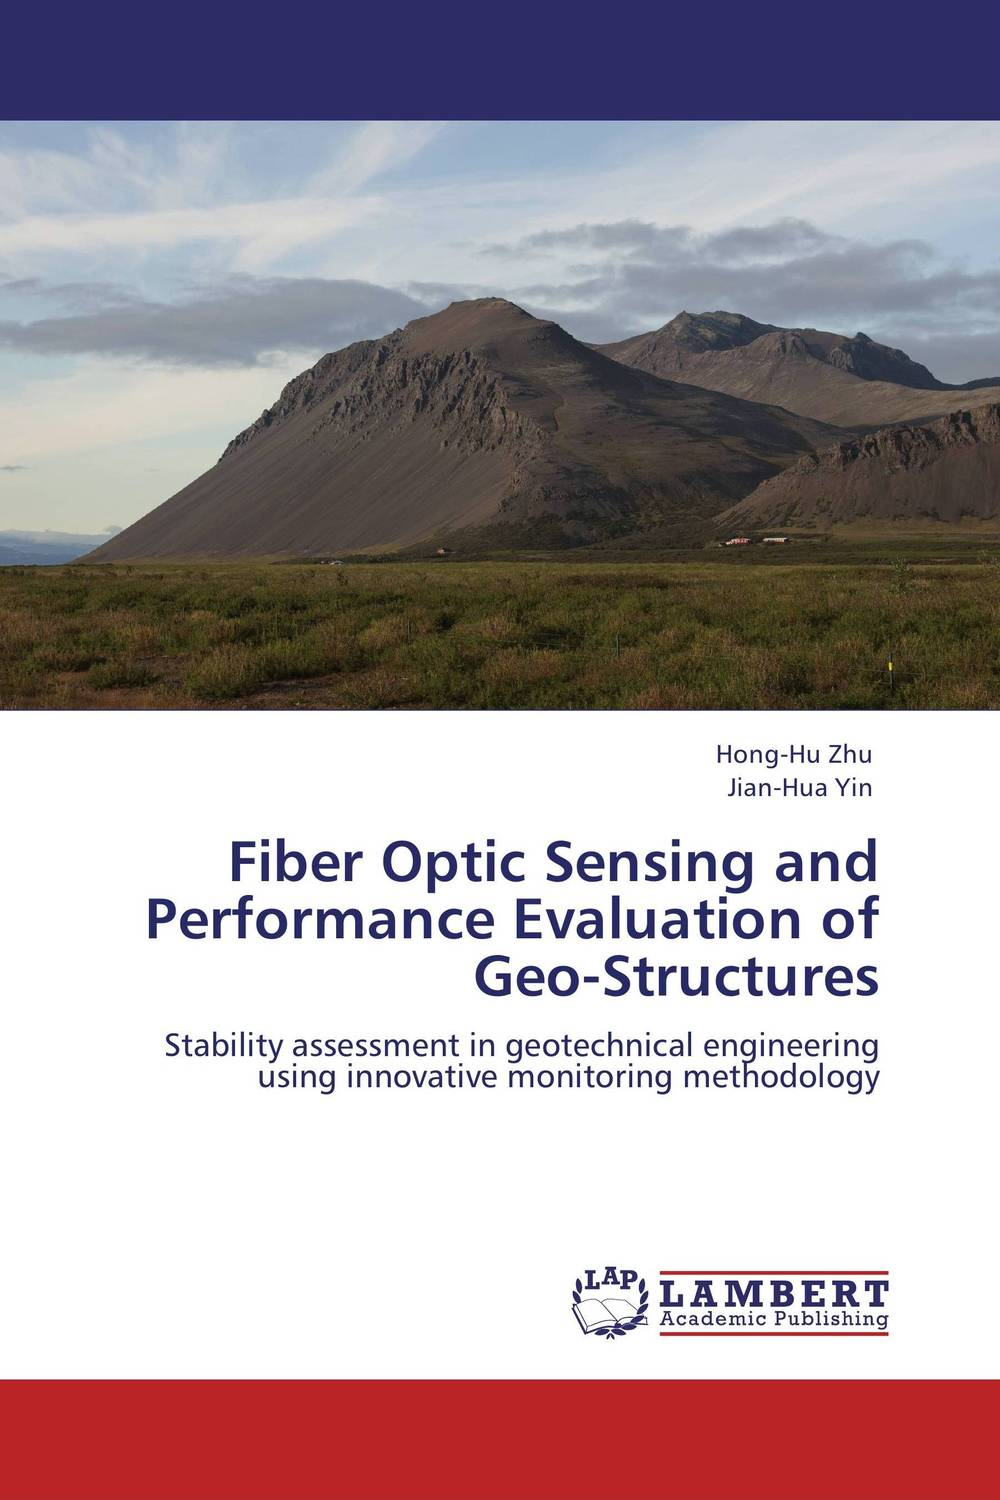 Fiber Optic Sensing and Performance Evaluation of Geo-Structures ray tricker optoelectronics and fiber optic technology